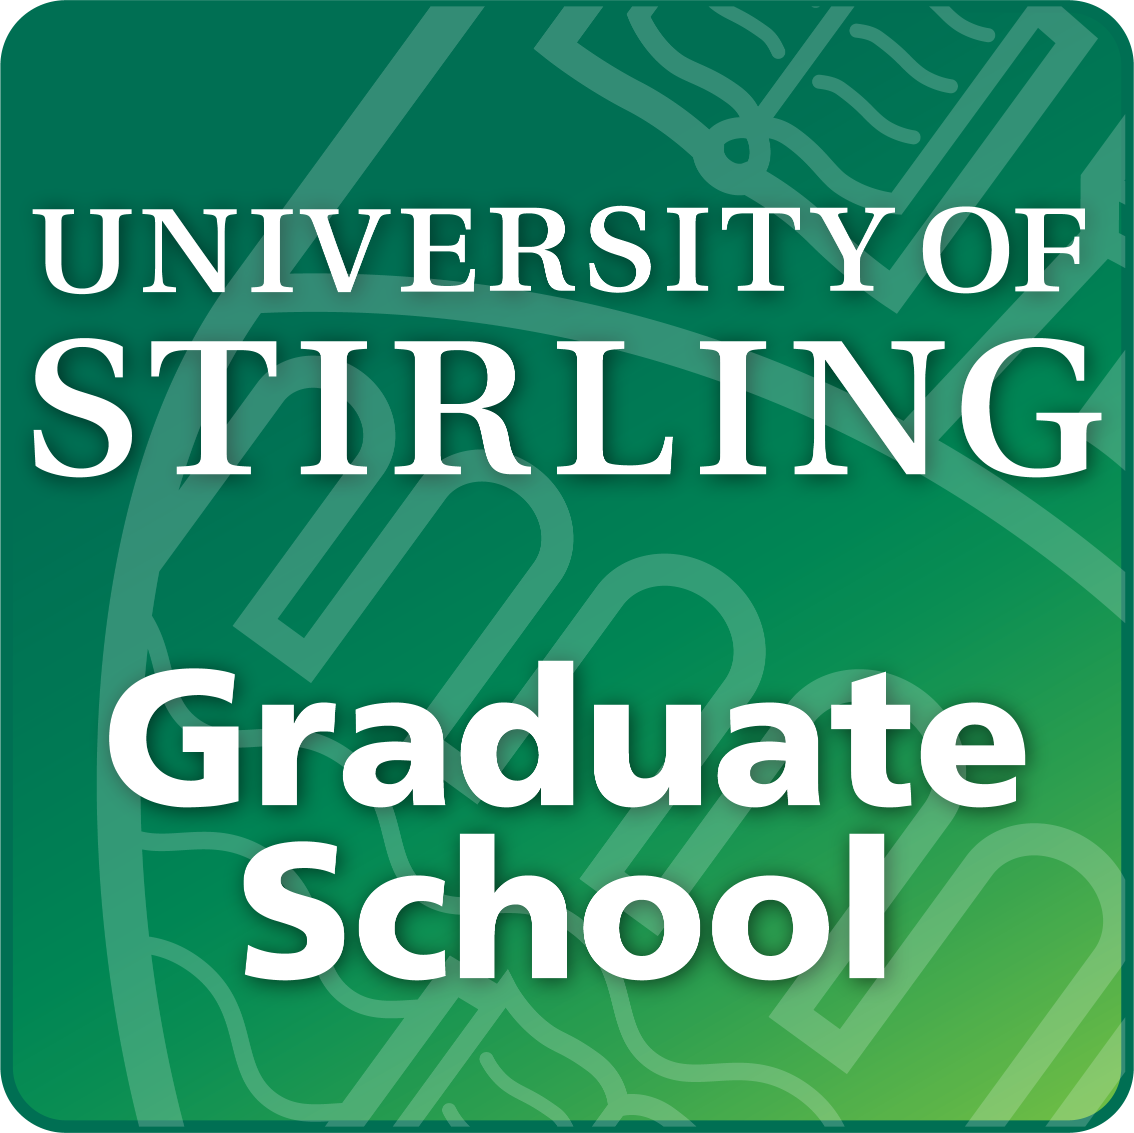 @StirlingGradSch